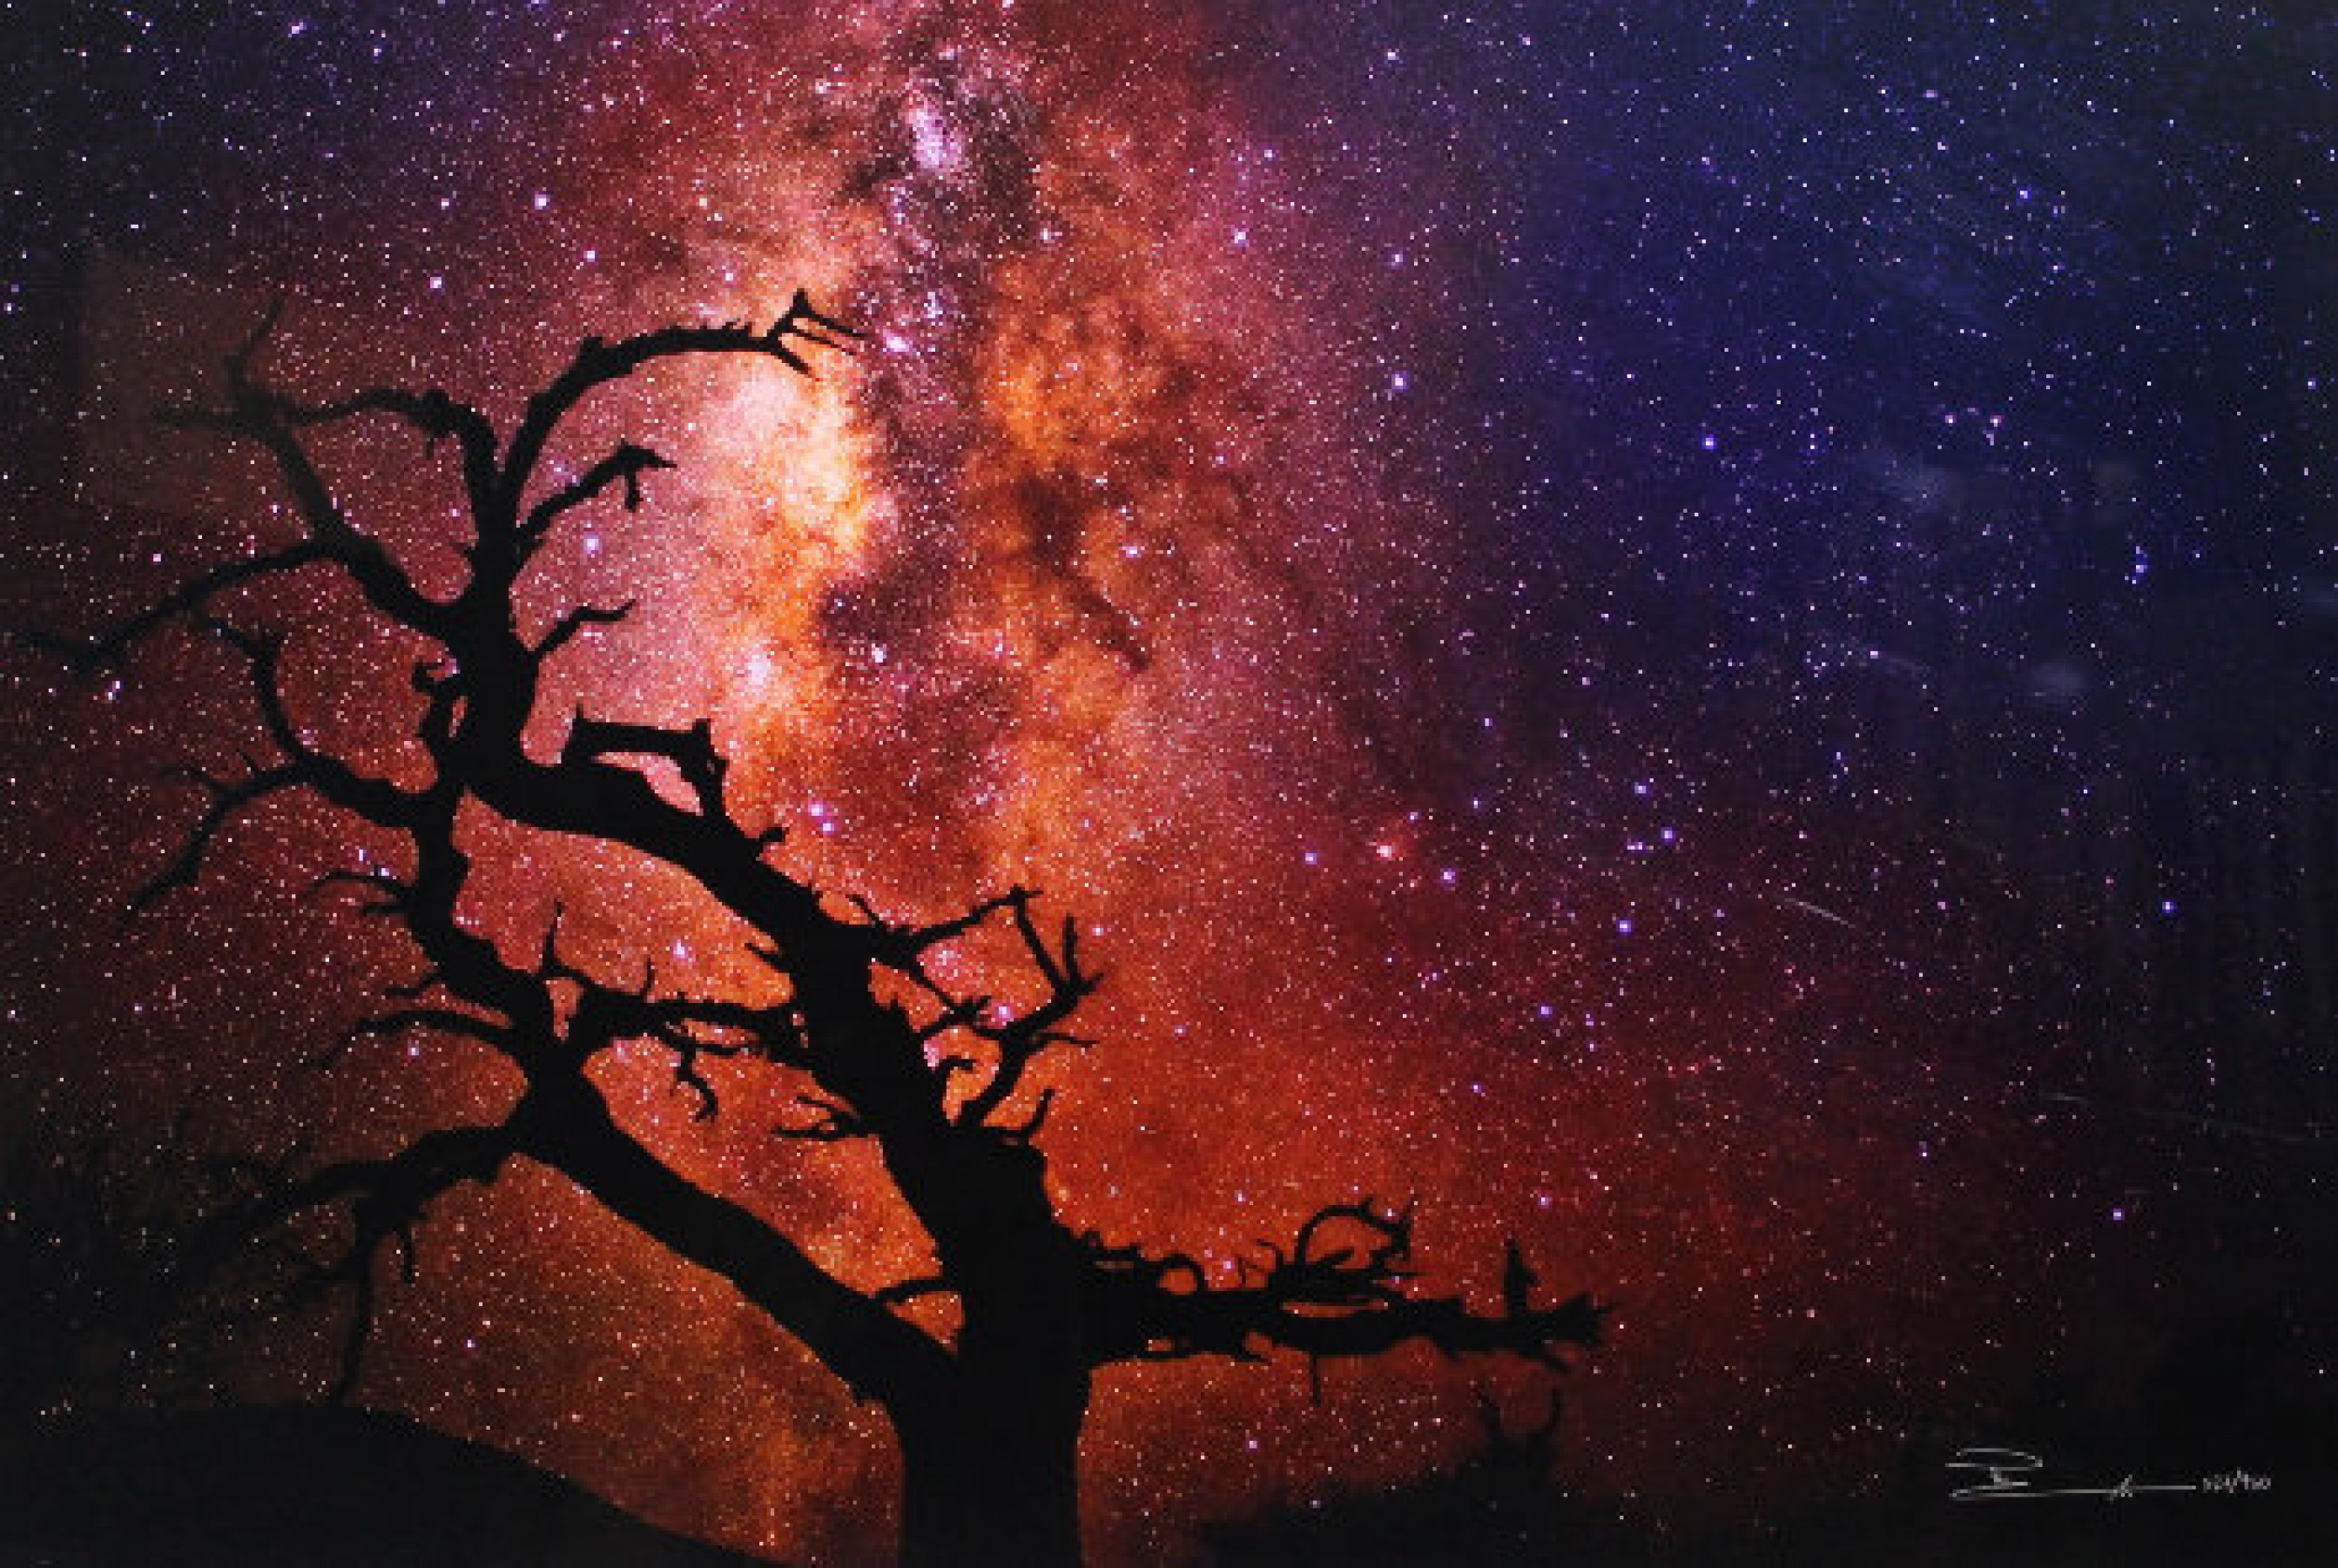 Tree of the Universe, Mauna Kea, Big Island, Hawaii